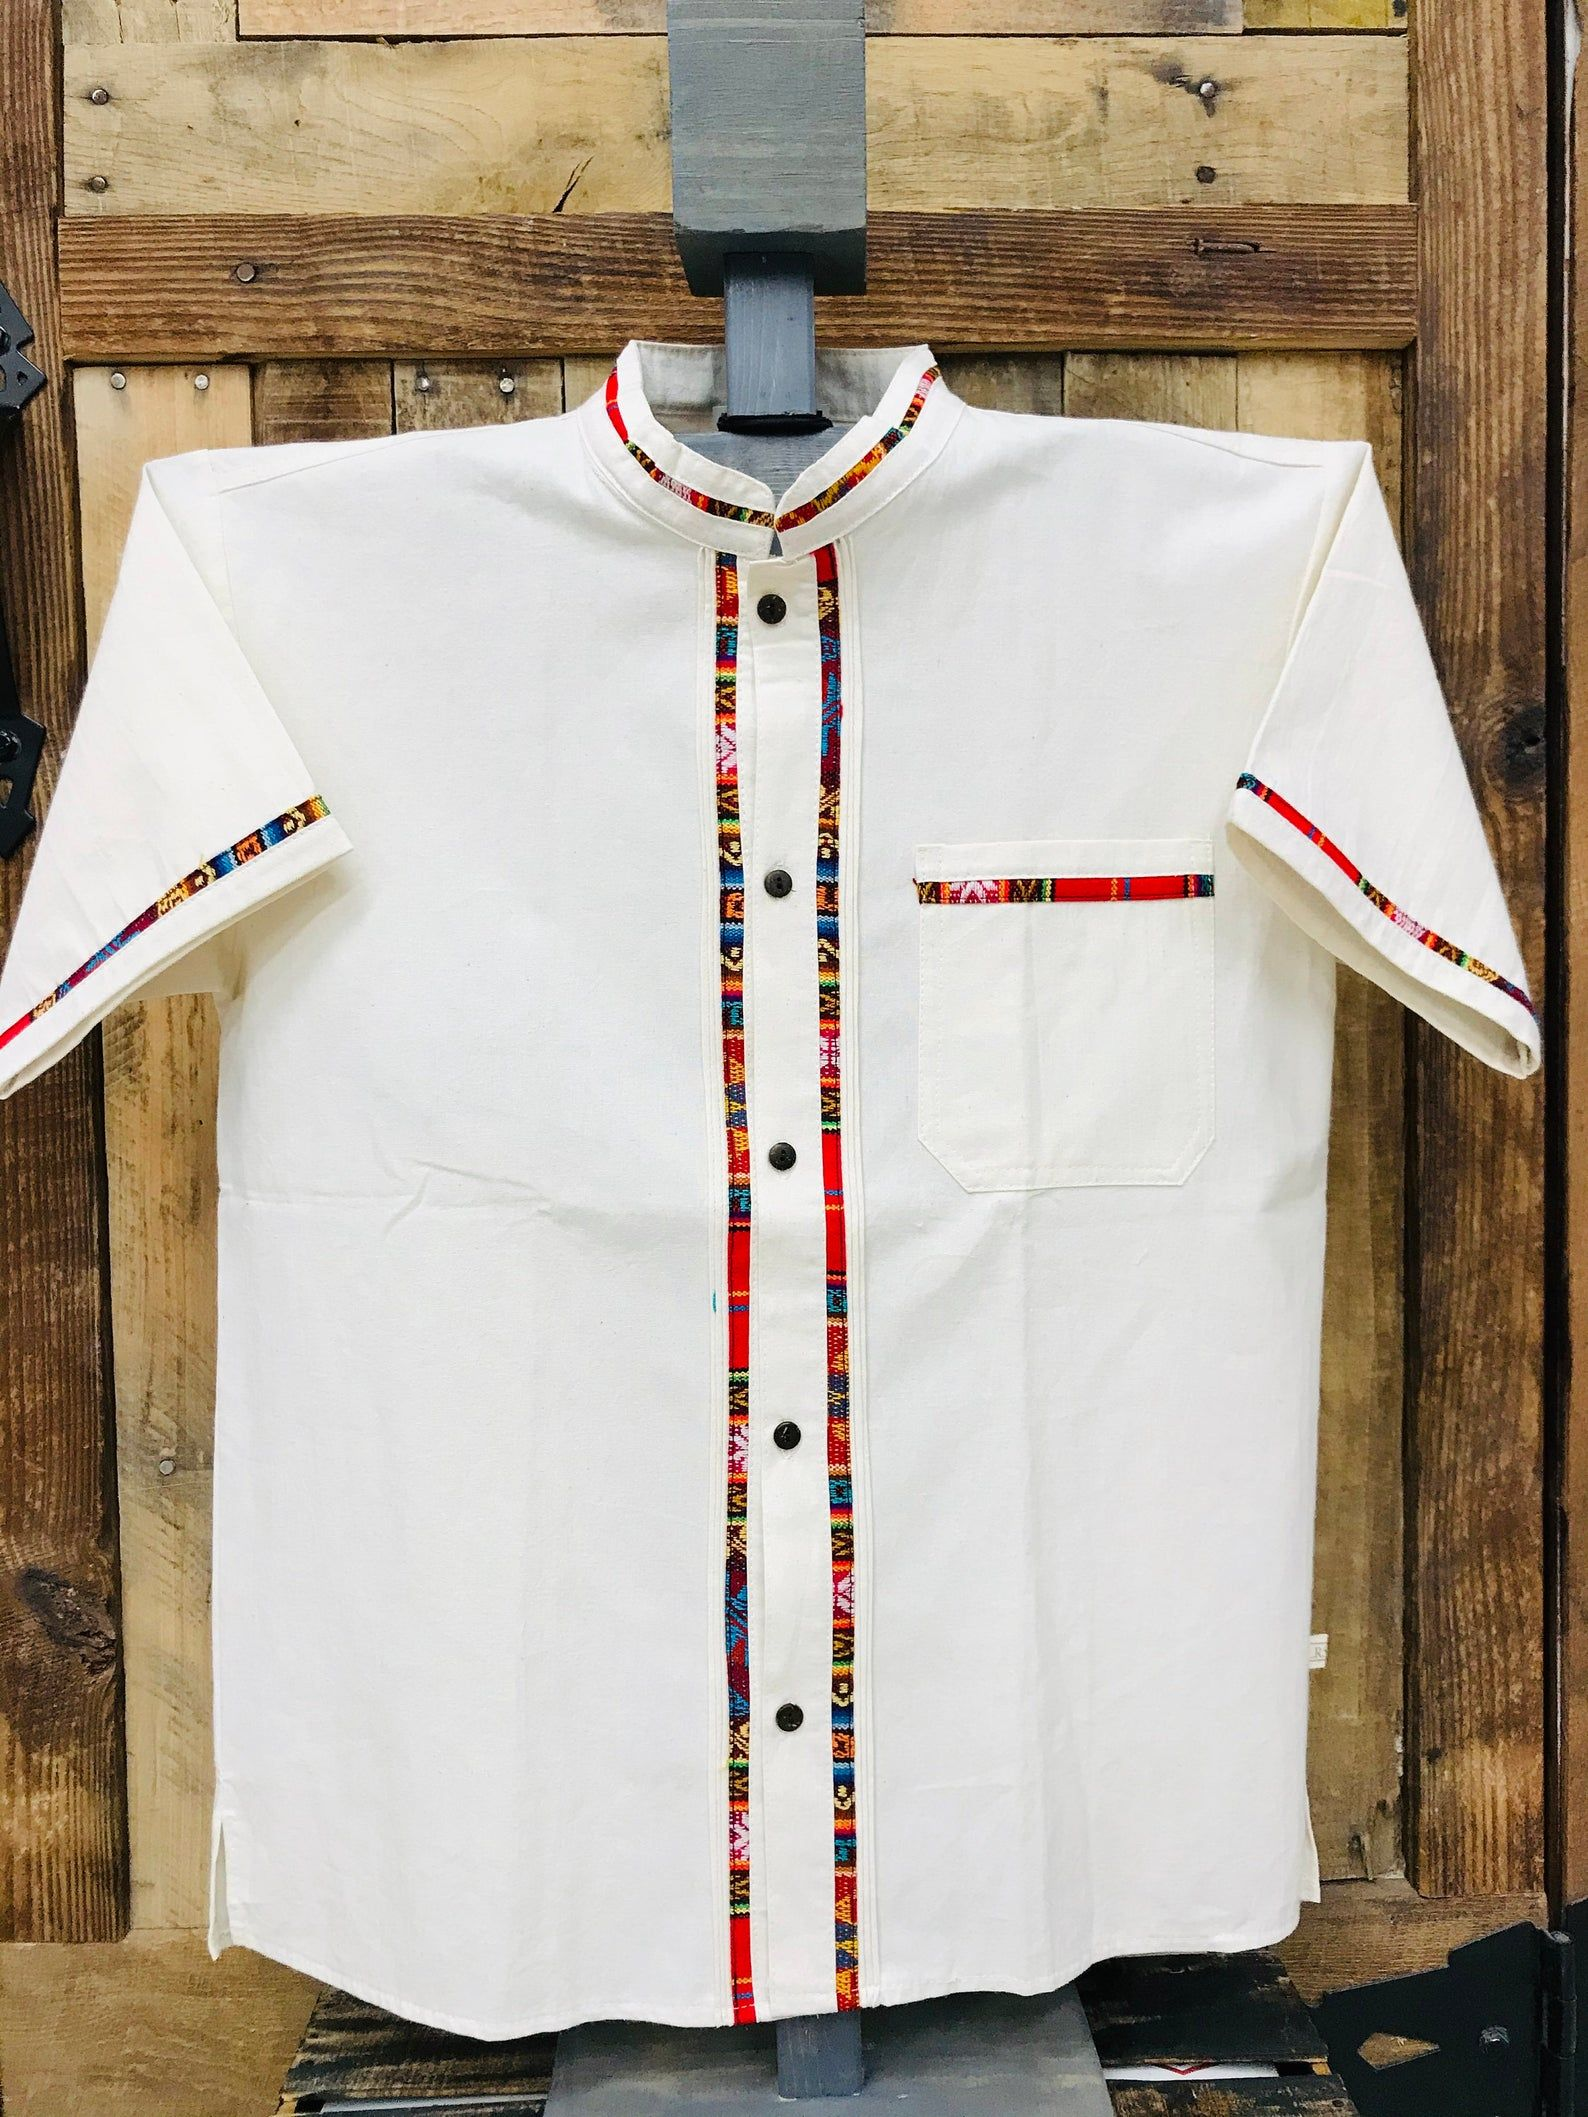 28++ Mexican shirts for men ideas ideas in 2021